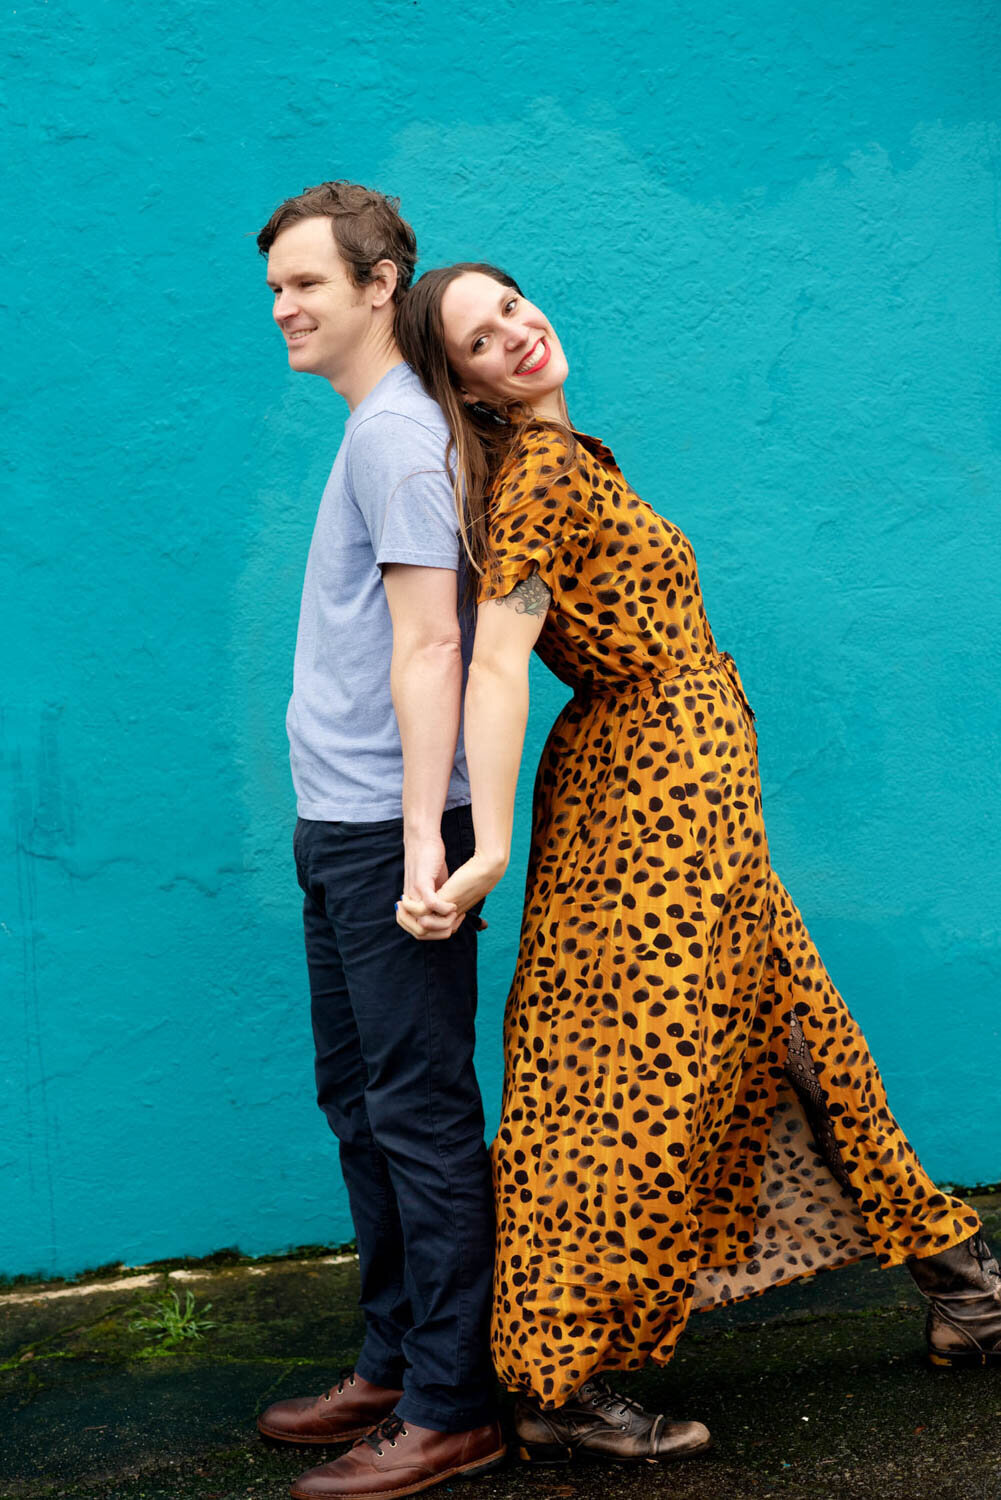 a woman in a leopard dress leans against a man in front of a bright blue wall